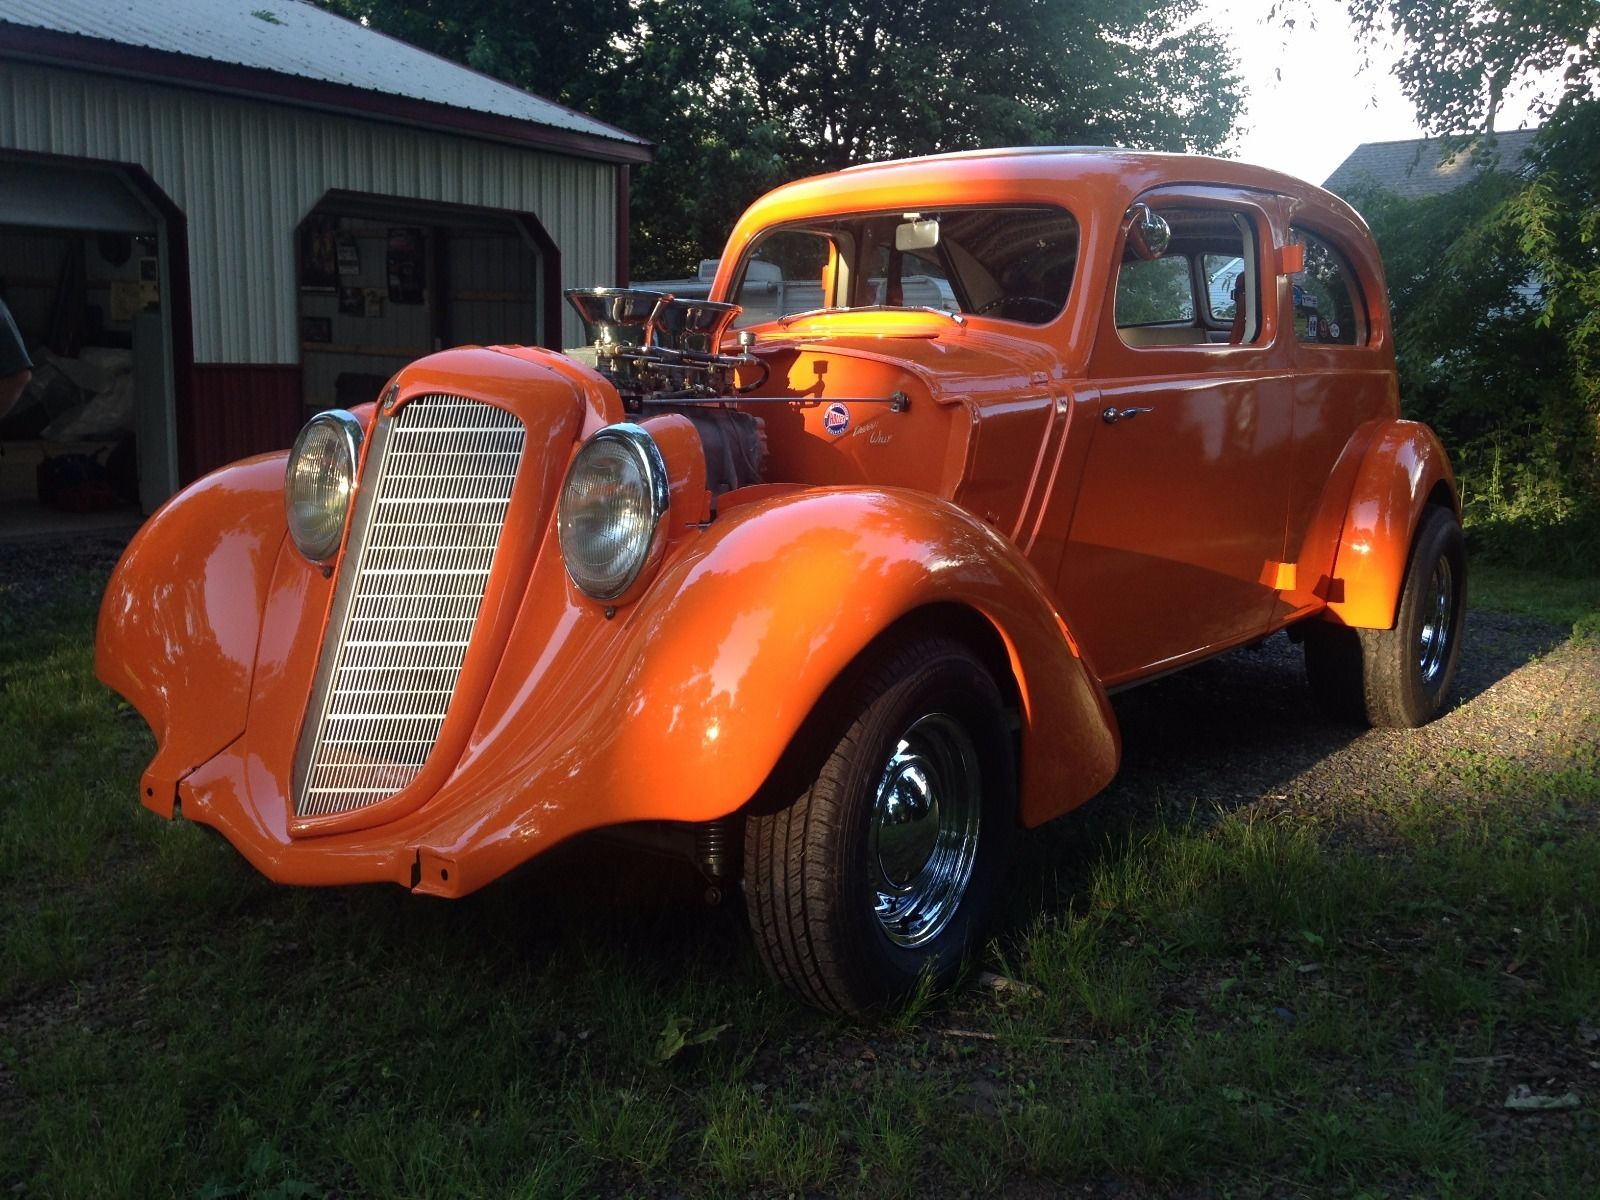 This Hupmobile Hot Rod Has Hemi Power, A Four Speed, And A Huffer – A Cool Oddball